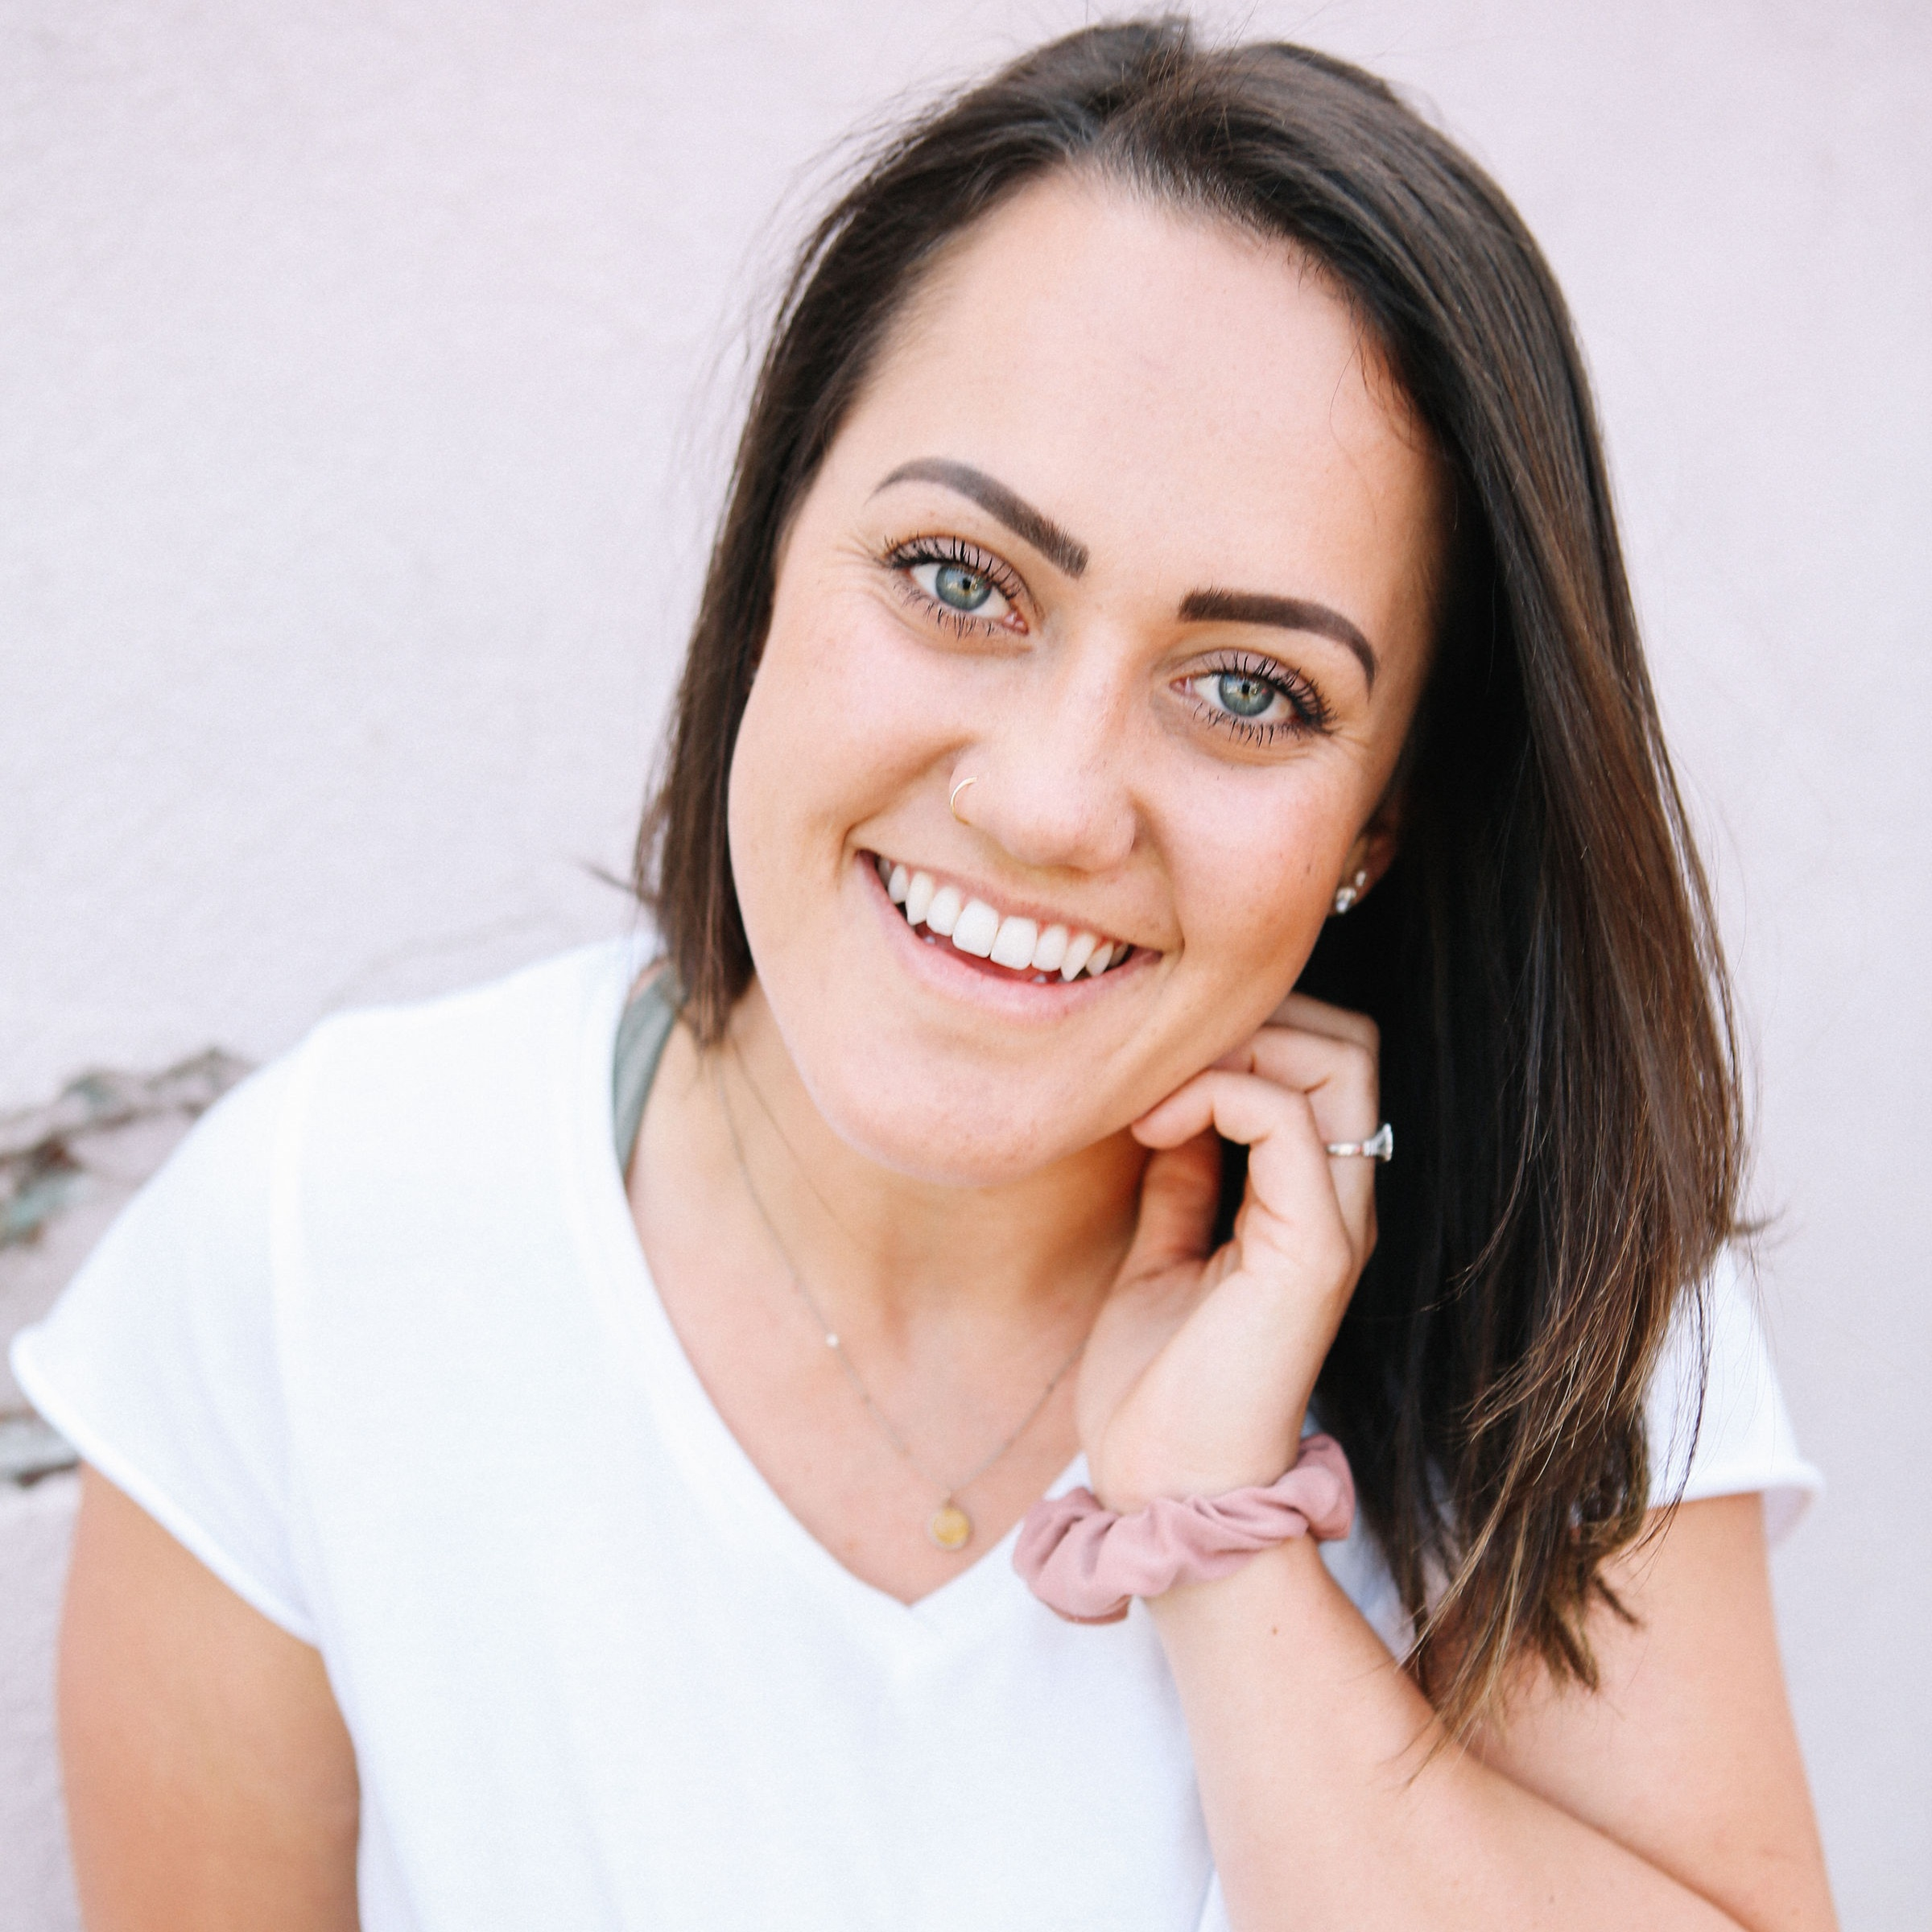 Hey girl! I'm Madalynne - A health and fitness coach passionate about helping busy women who've tried it all finally lose weight and get healthy.